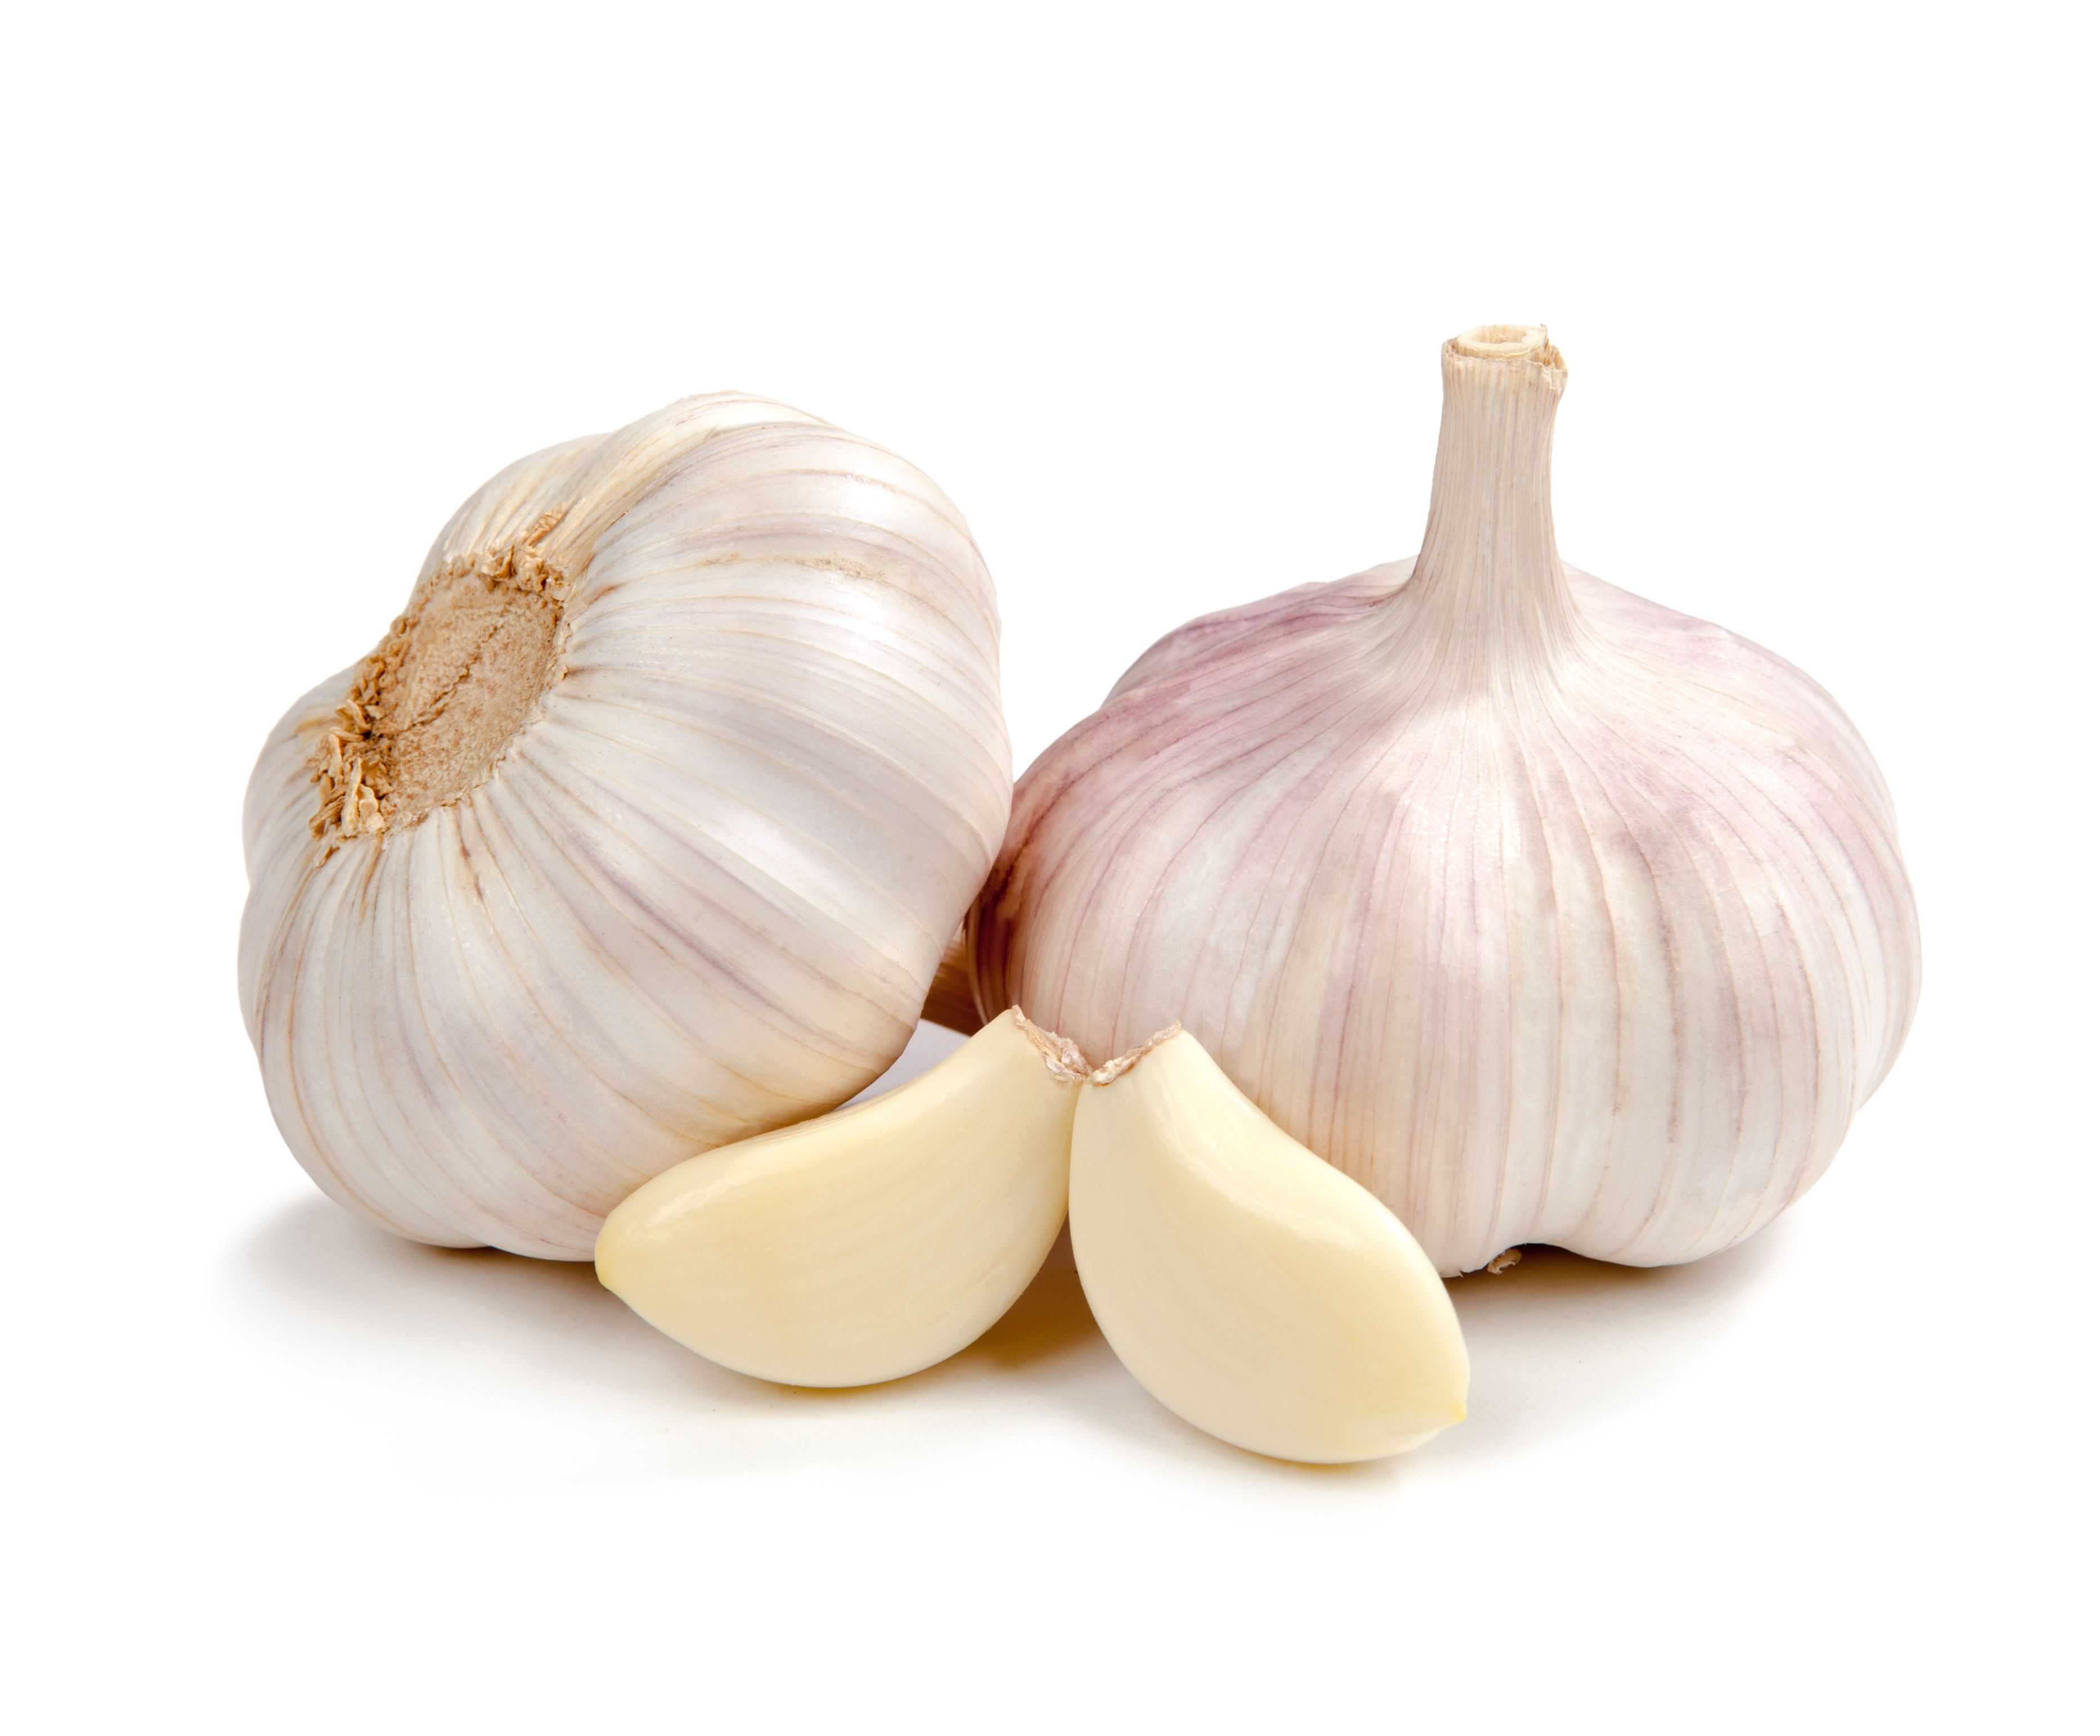 Garlic Nutrition And Health Benefits - Good Whole Food